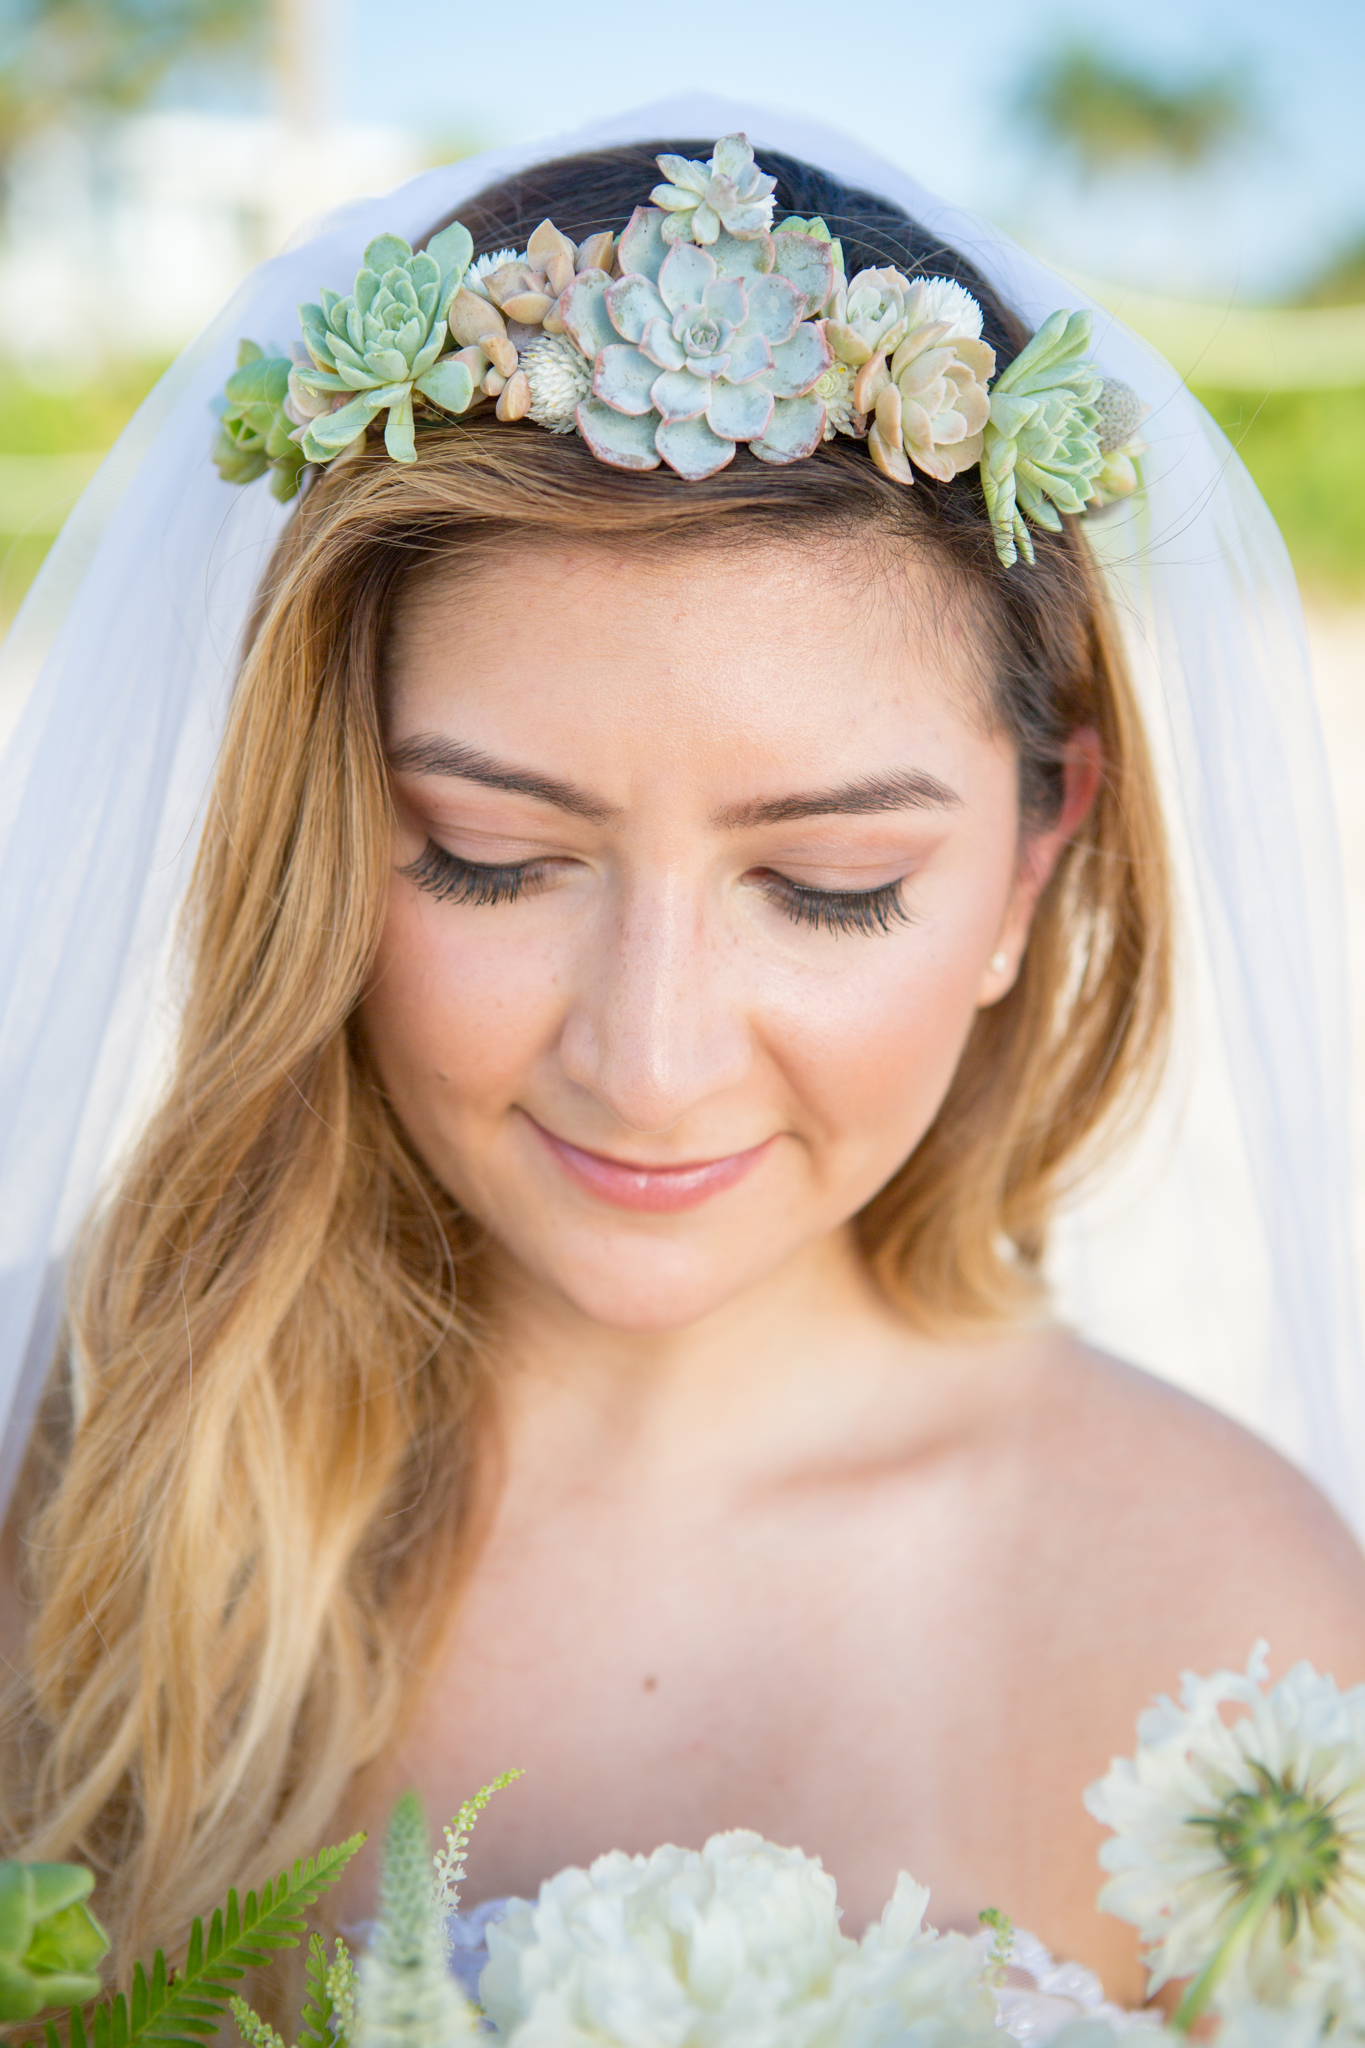 Close-up of bride's flower crown made of succulents at beach wedding